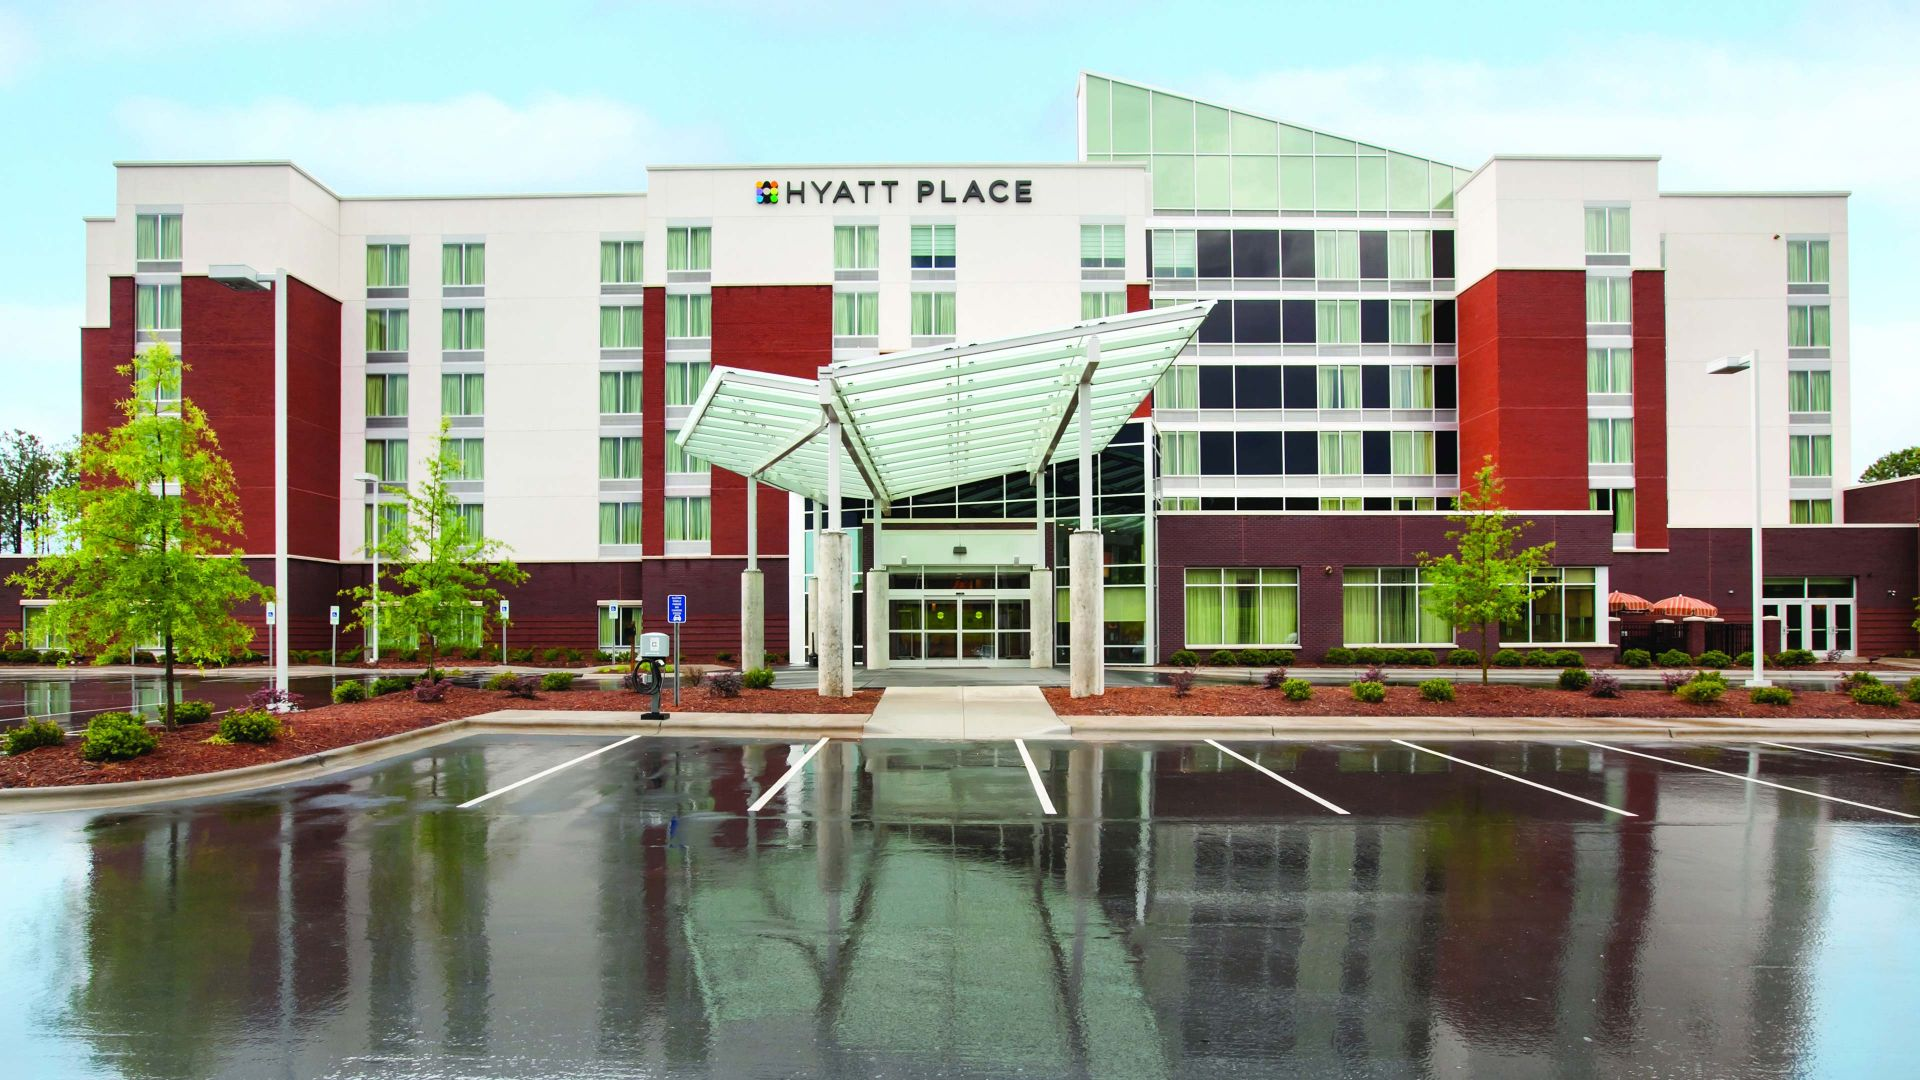 hyatt place exterior view